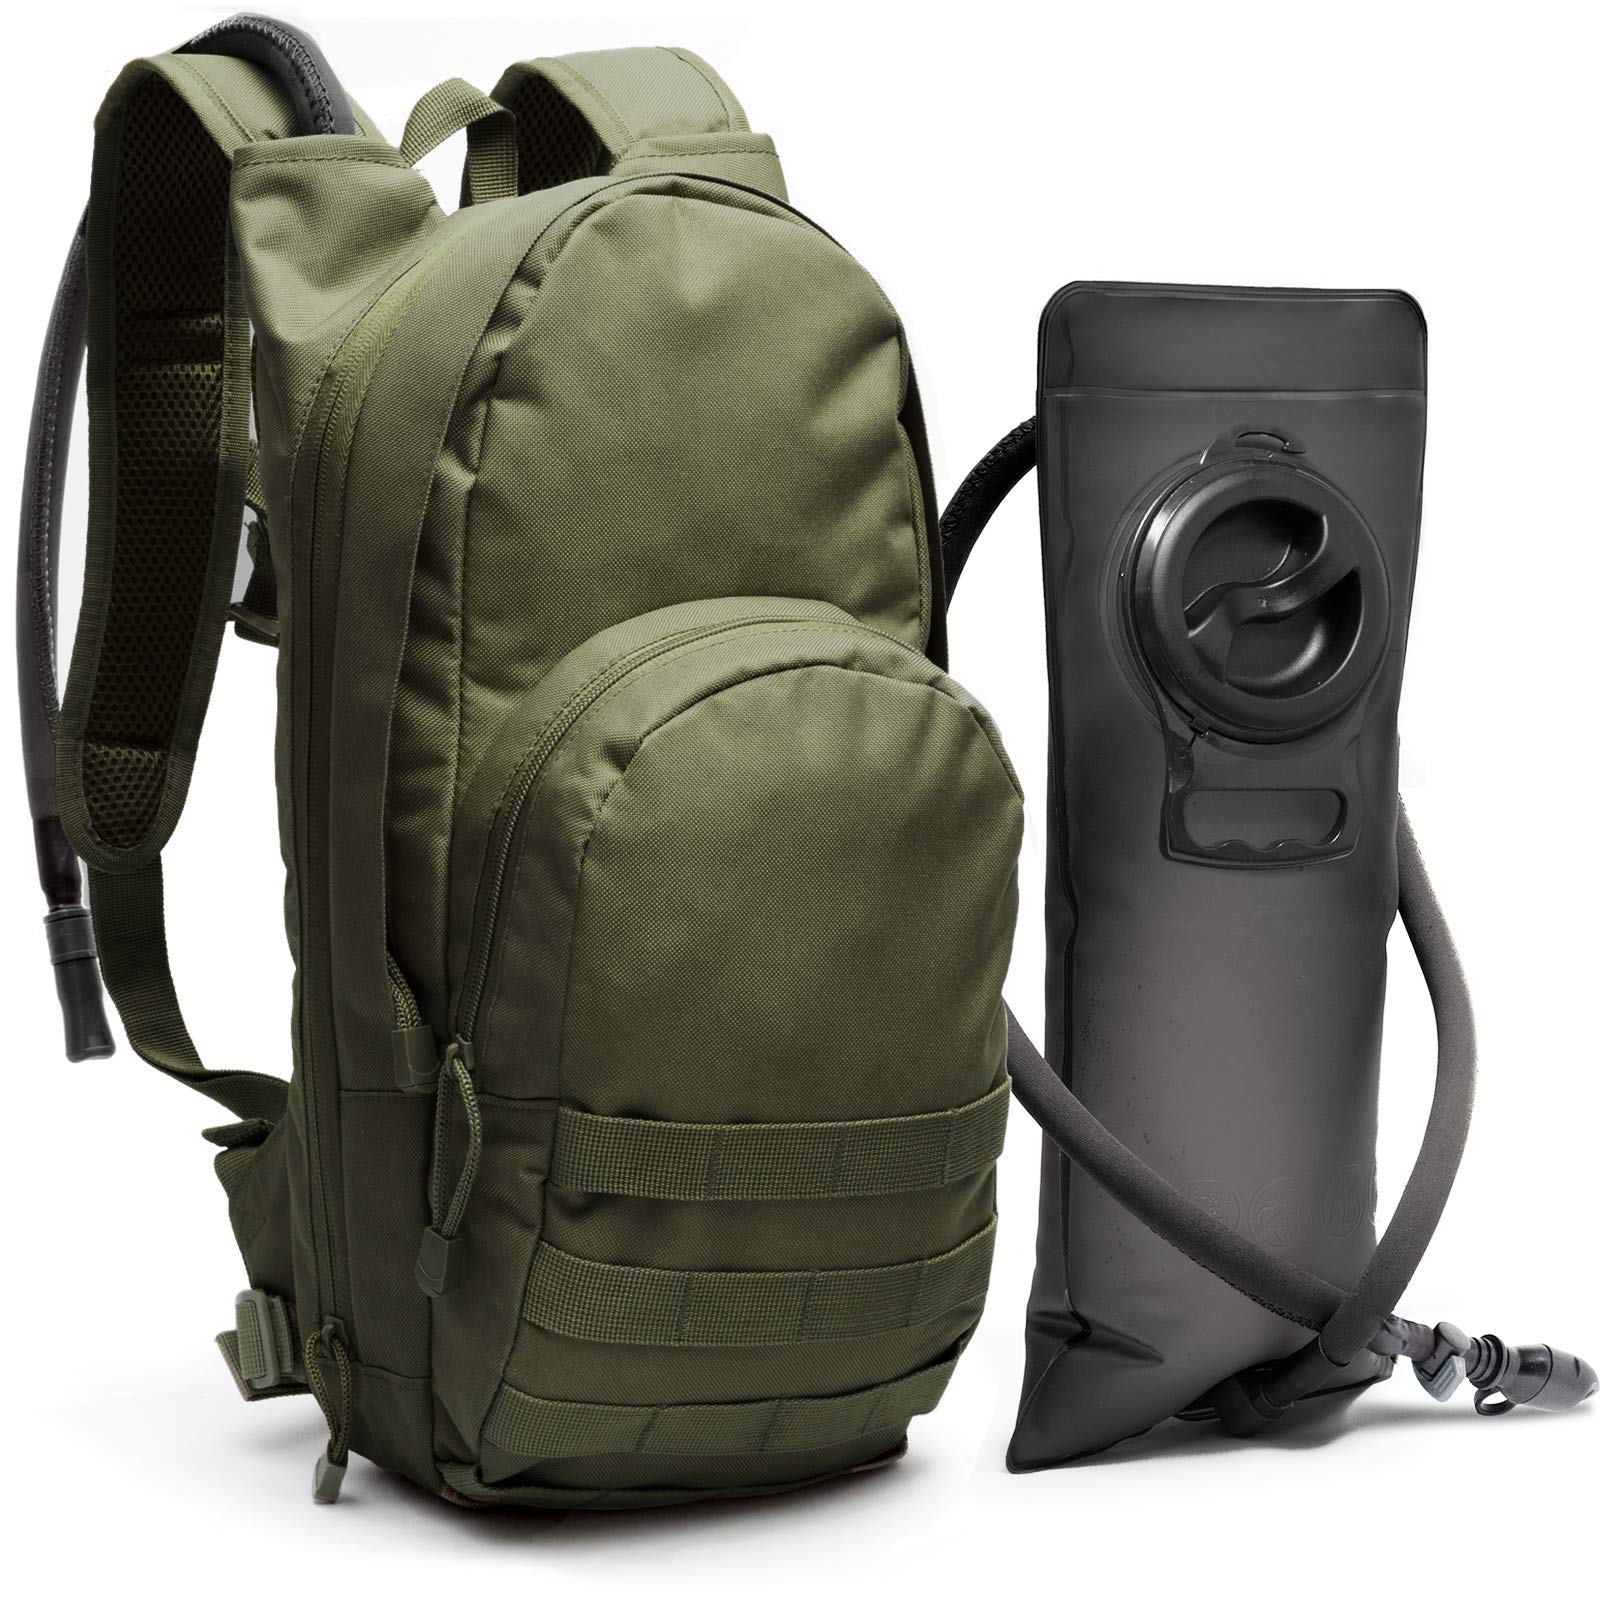 e01428f01d95 Diaz Sport Tactical Molle Hydration Pack Backpack with 3L Water Bladder.  Lightweight & Durable Military